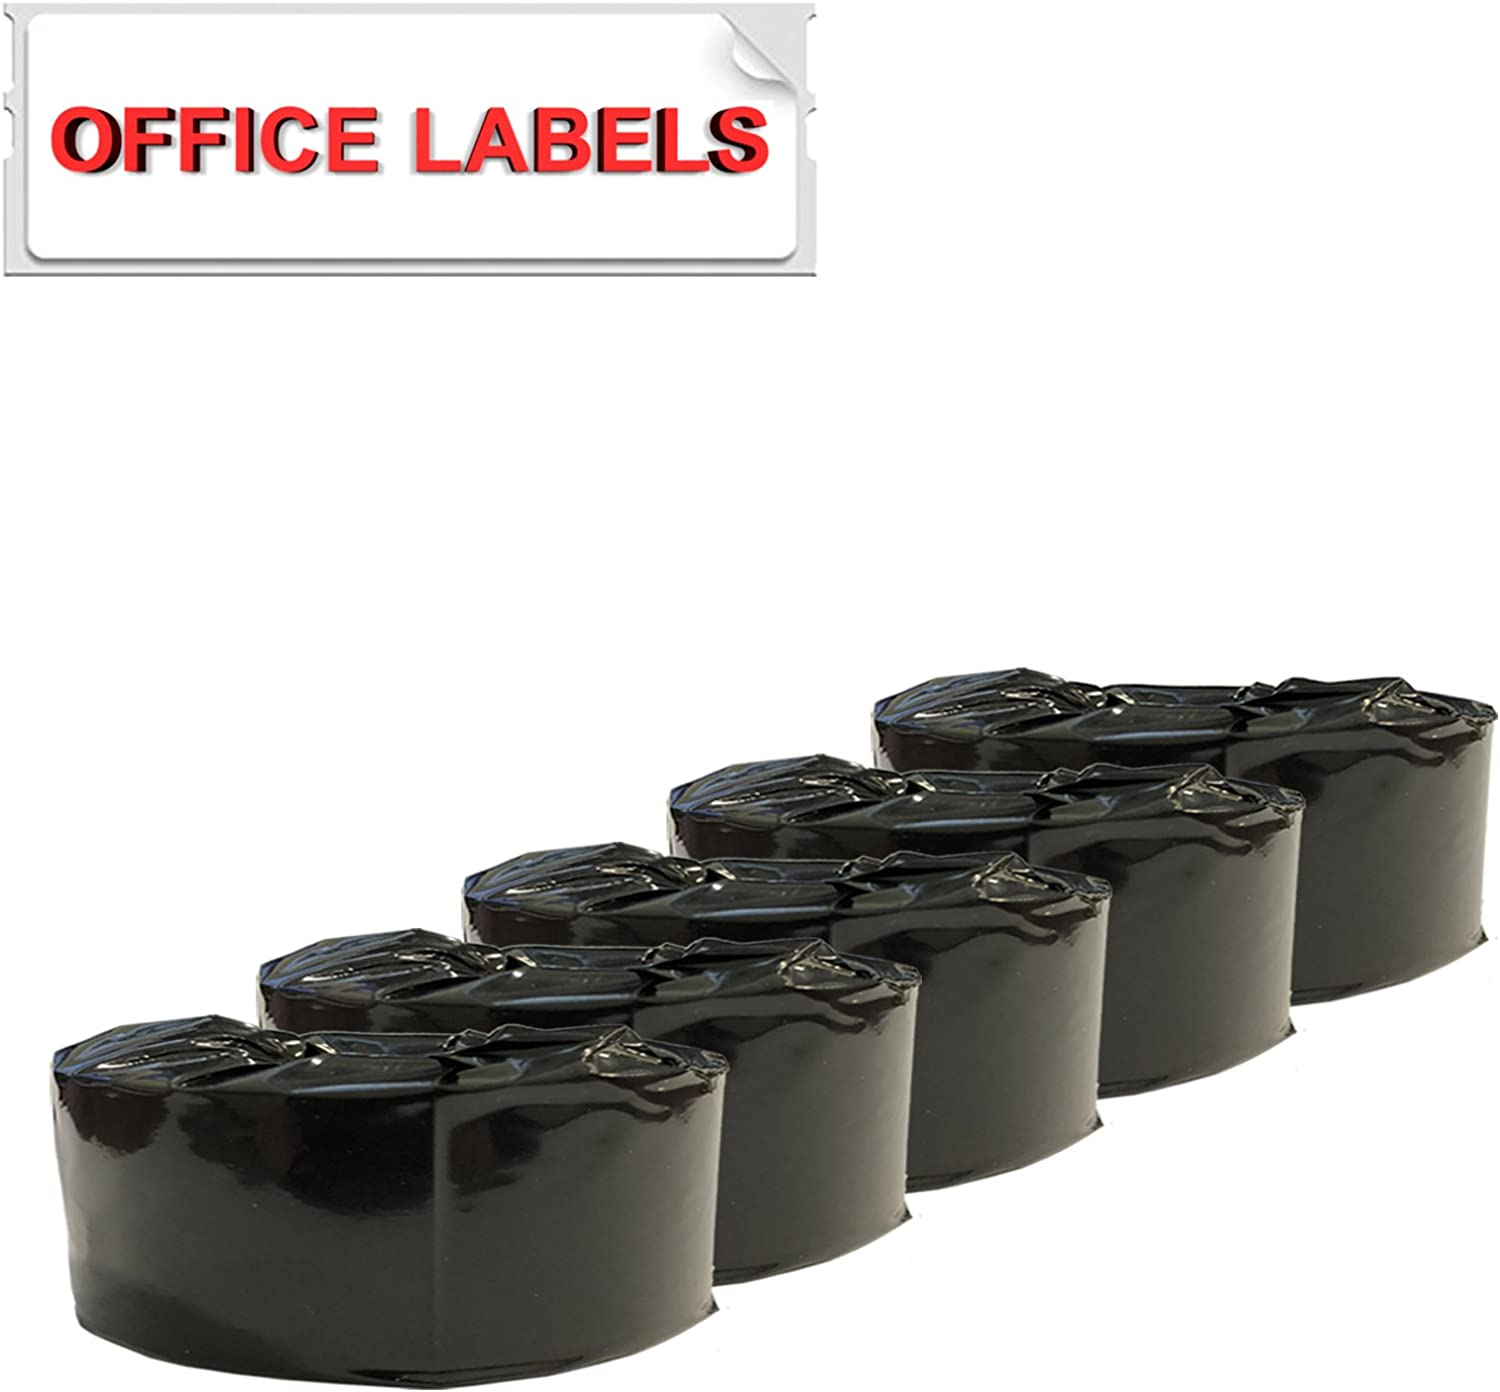 5 Rolls of SLP-2RLH Compatible Labels for Seiko SmartLabel 1-1//8 x 3-1//2 by OFFICE LABELS 28mm x 89mm